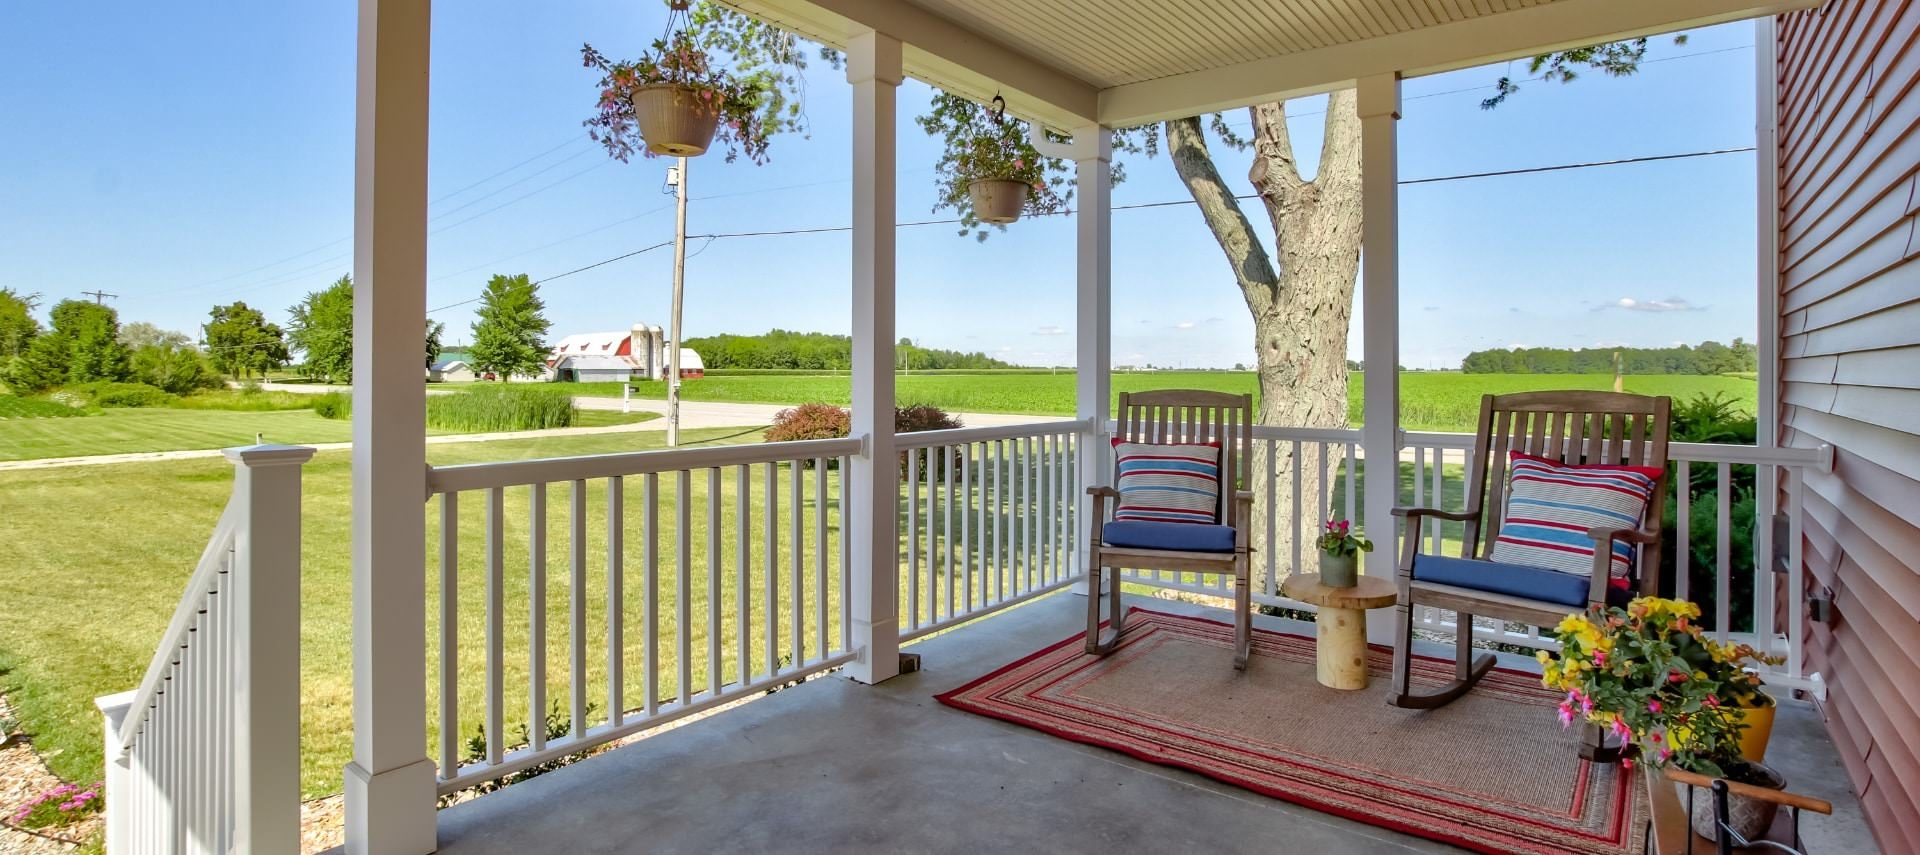 Front porch of property with two wooden rockers, area rug, and hanging flower baskets